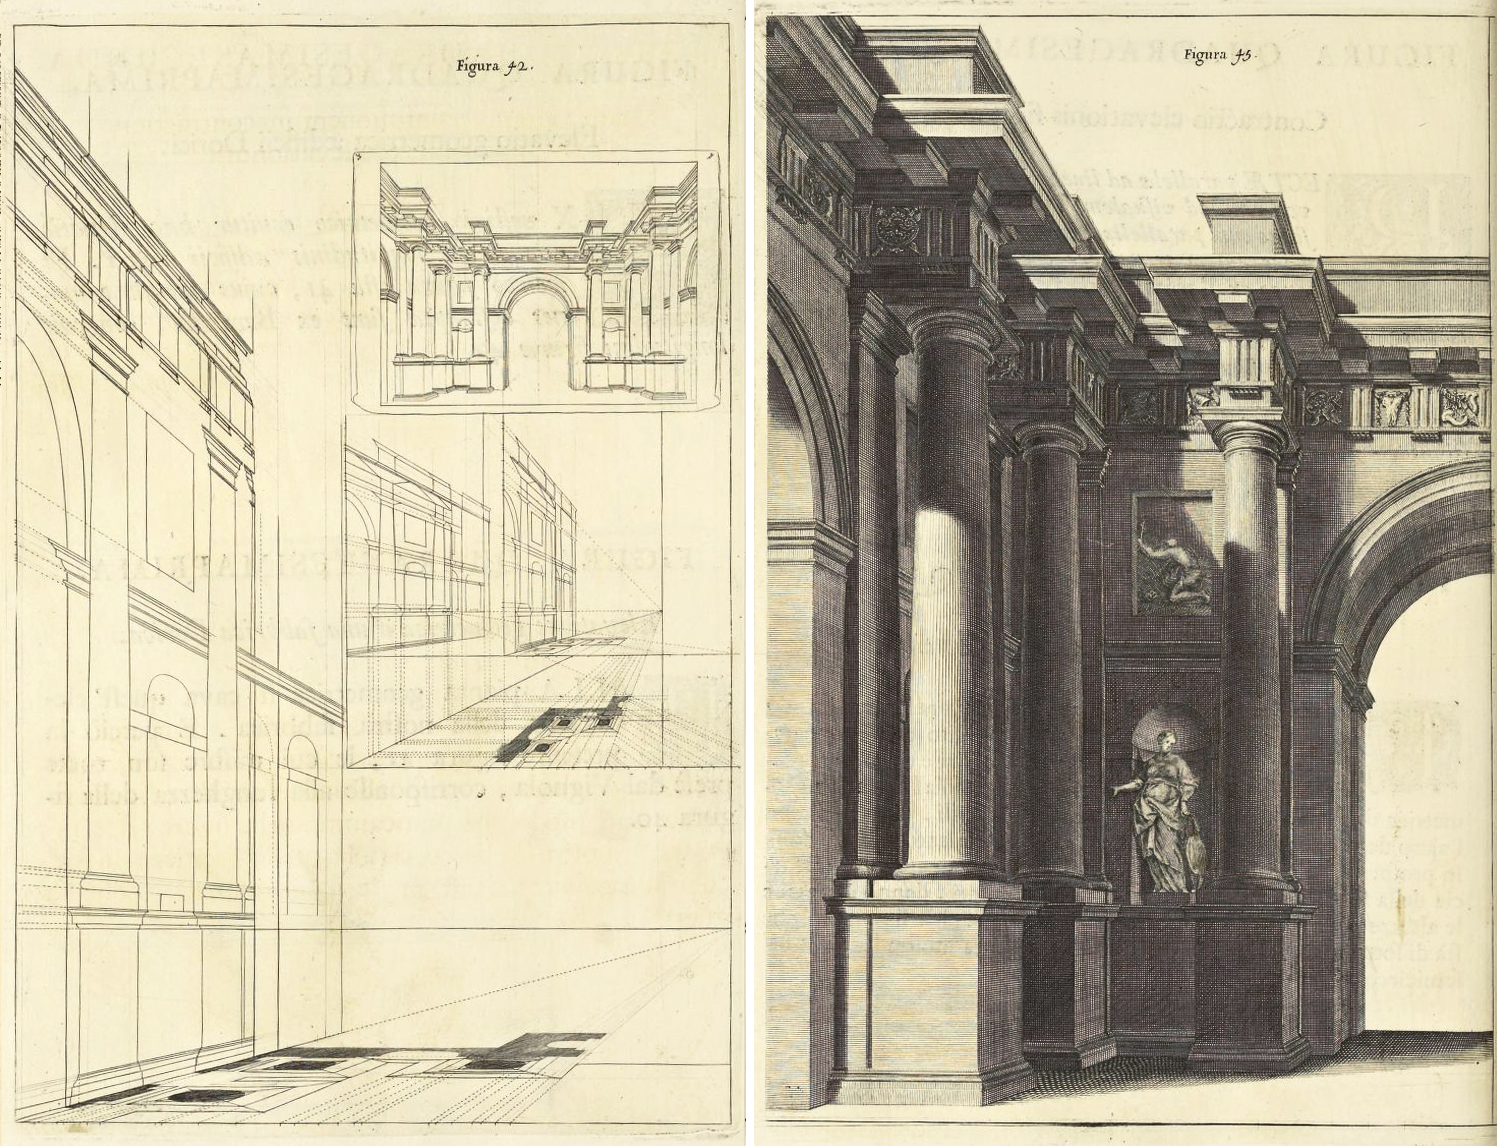 """Andrea Pozzo, Perspectiva Pictorum et Architectorum, vol. I (Rome, 1693), Figures 42 and 45. Getty Research Institute"""